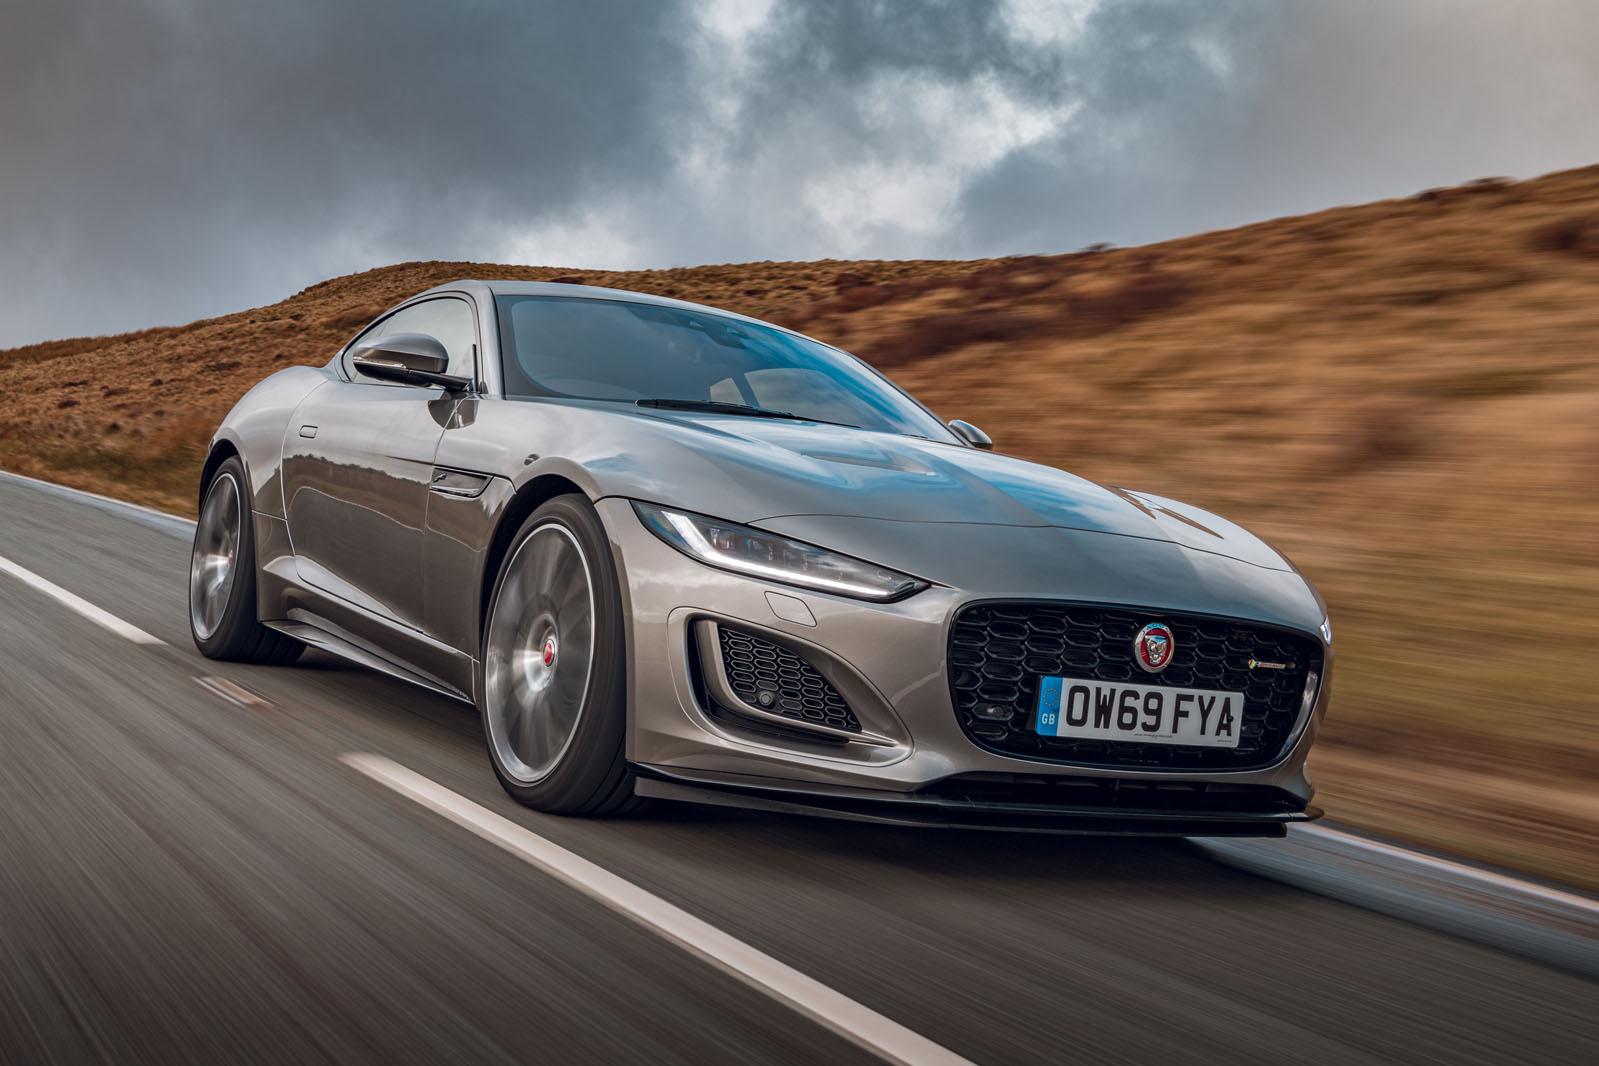 It's the right time for a design shake-up at Jaguar | Autocar